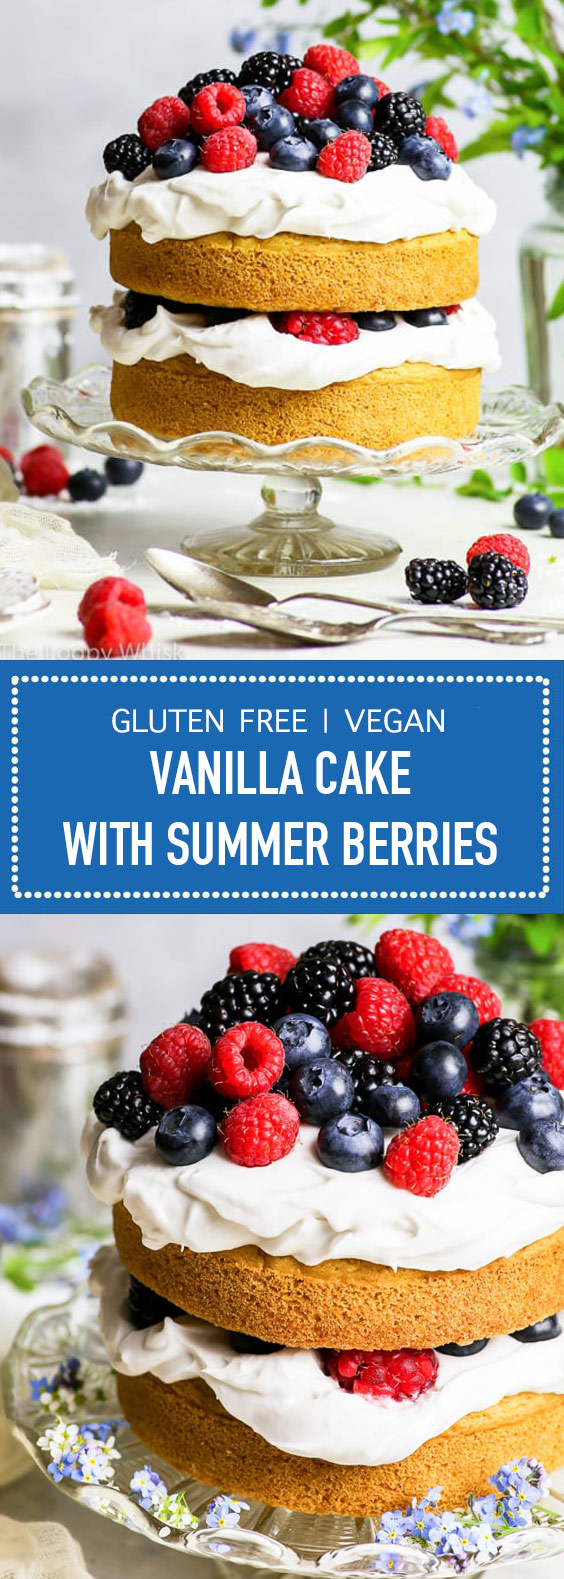 Vegan Vanilla Cake with Summer Berries